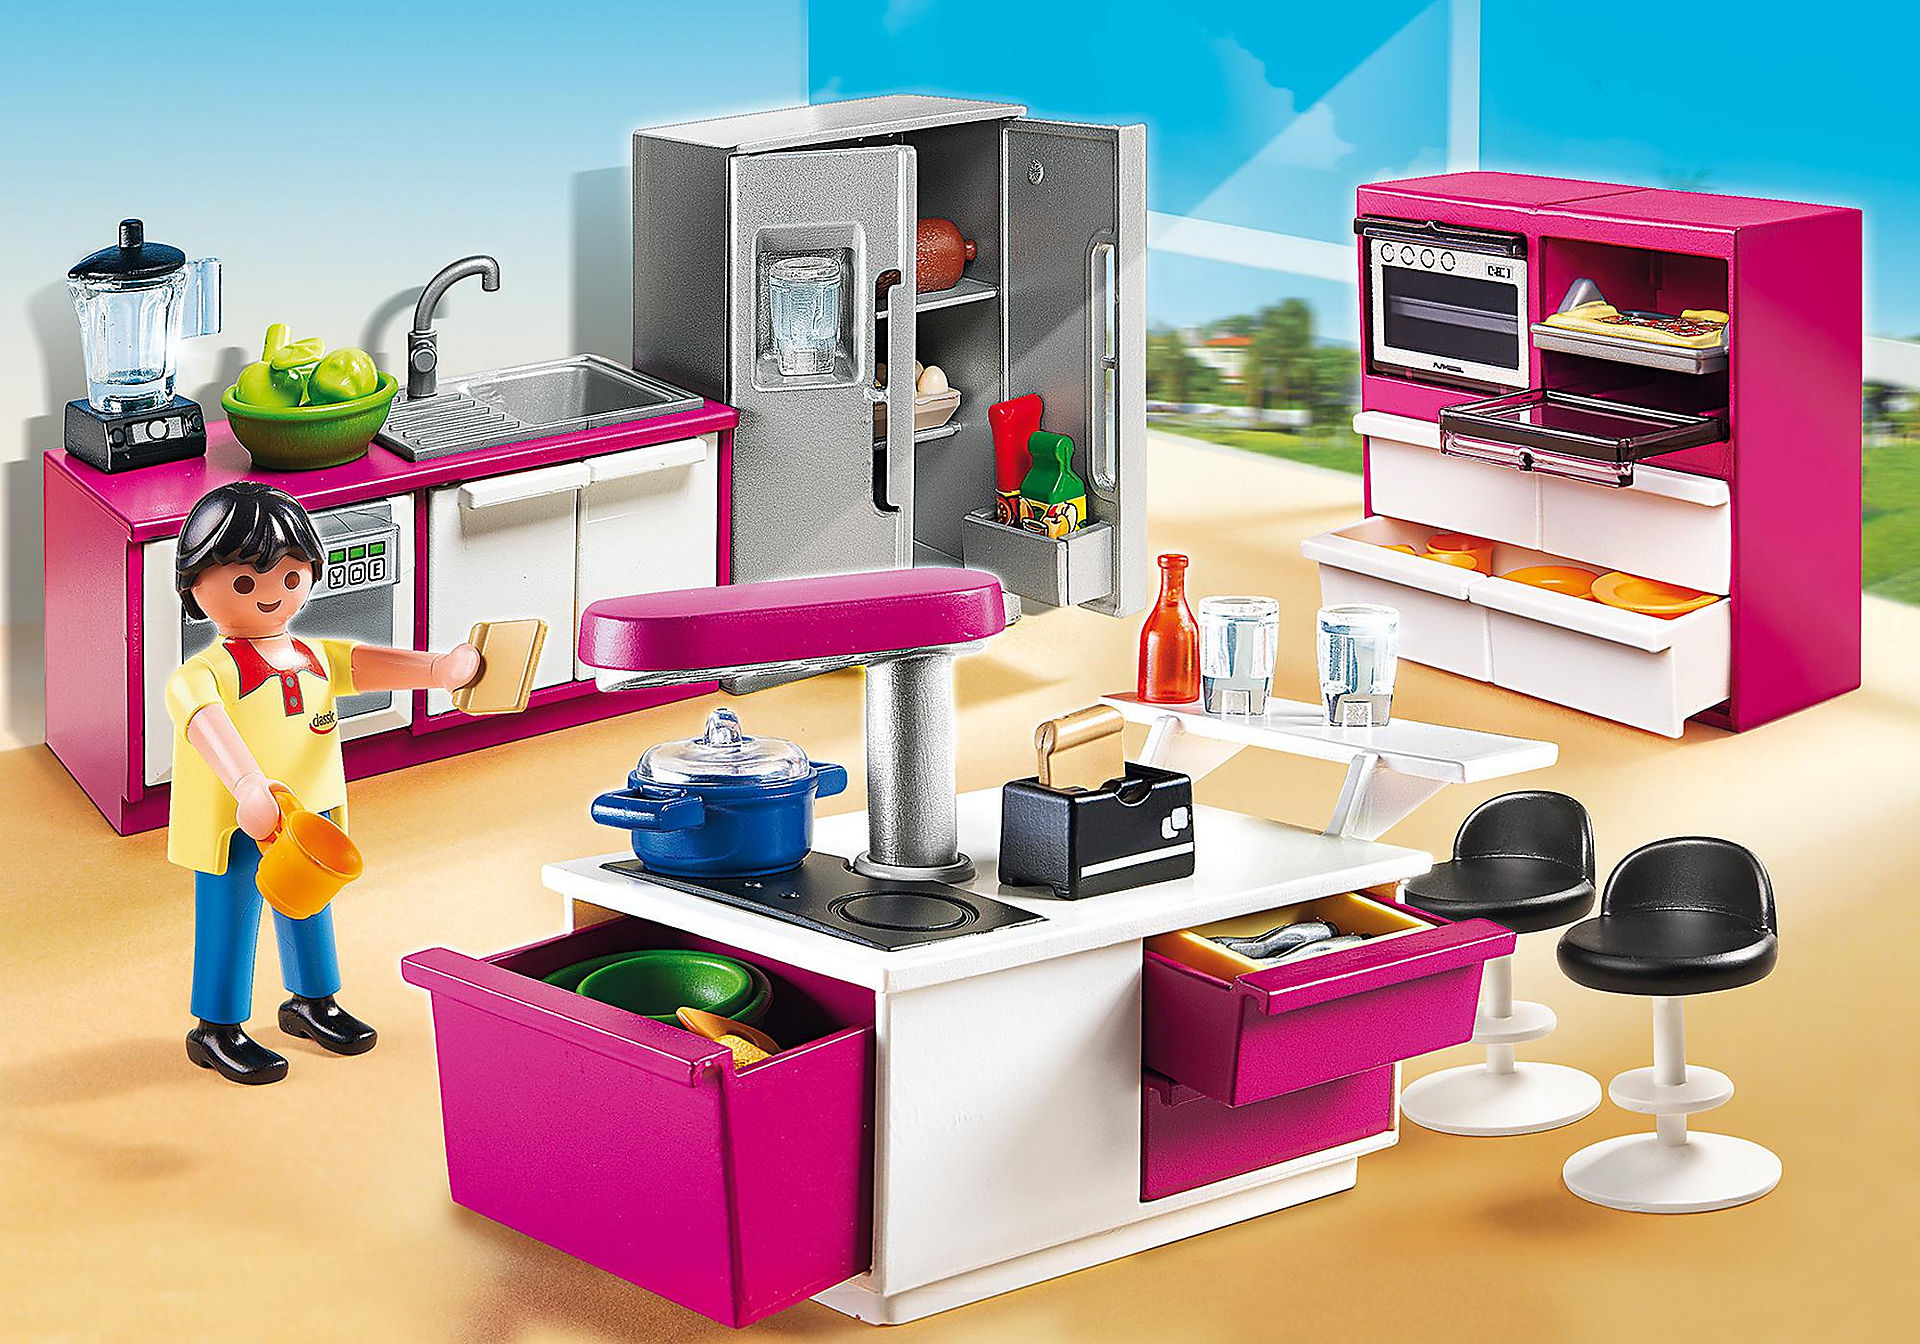 http://media.playmobil.com/i/playmobil/5582_product_detail/Modern Designer Kitchen